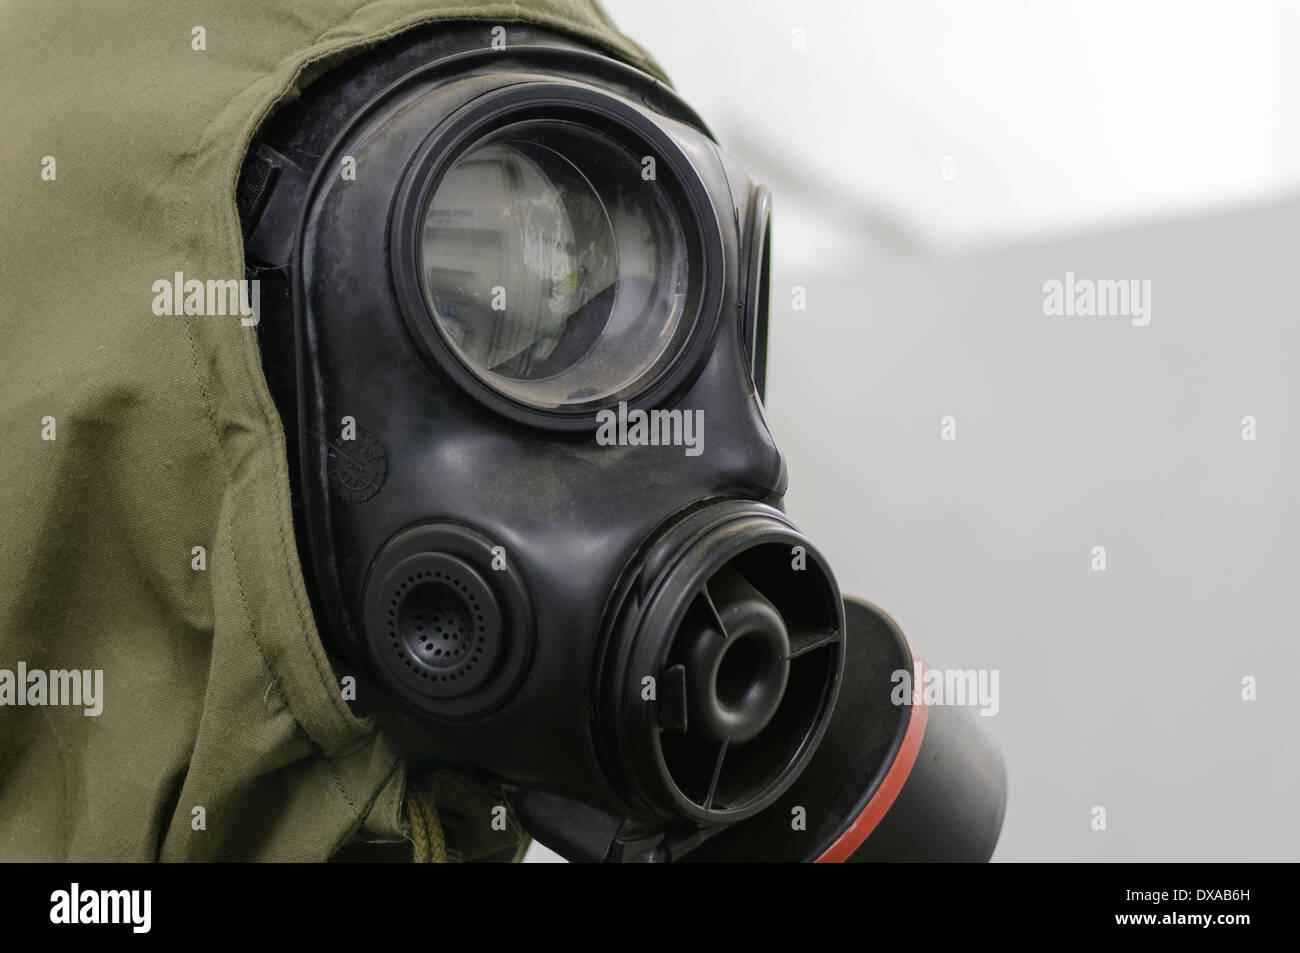 Gasmask and Nuclear, Biological and Chemical (NBC) suit Stock Photo